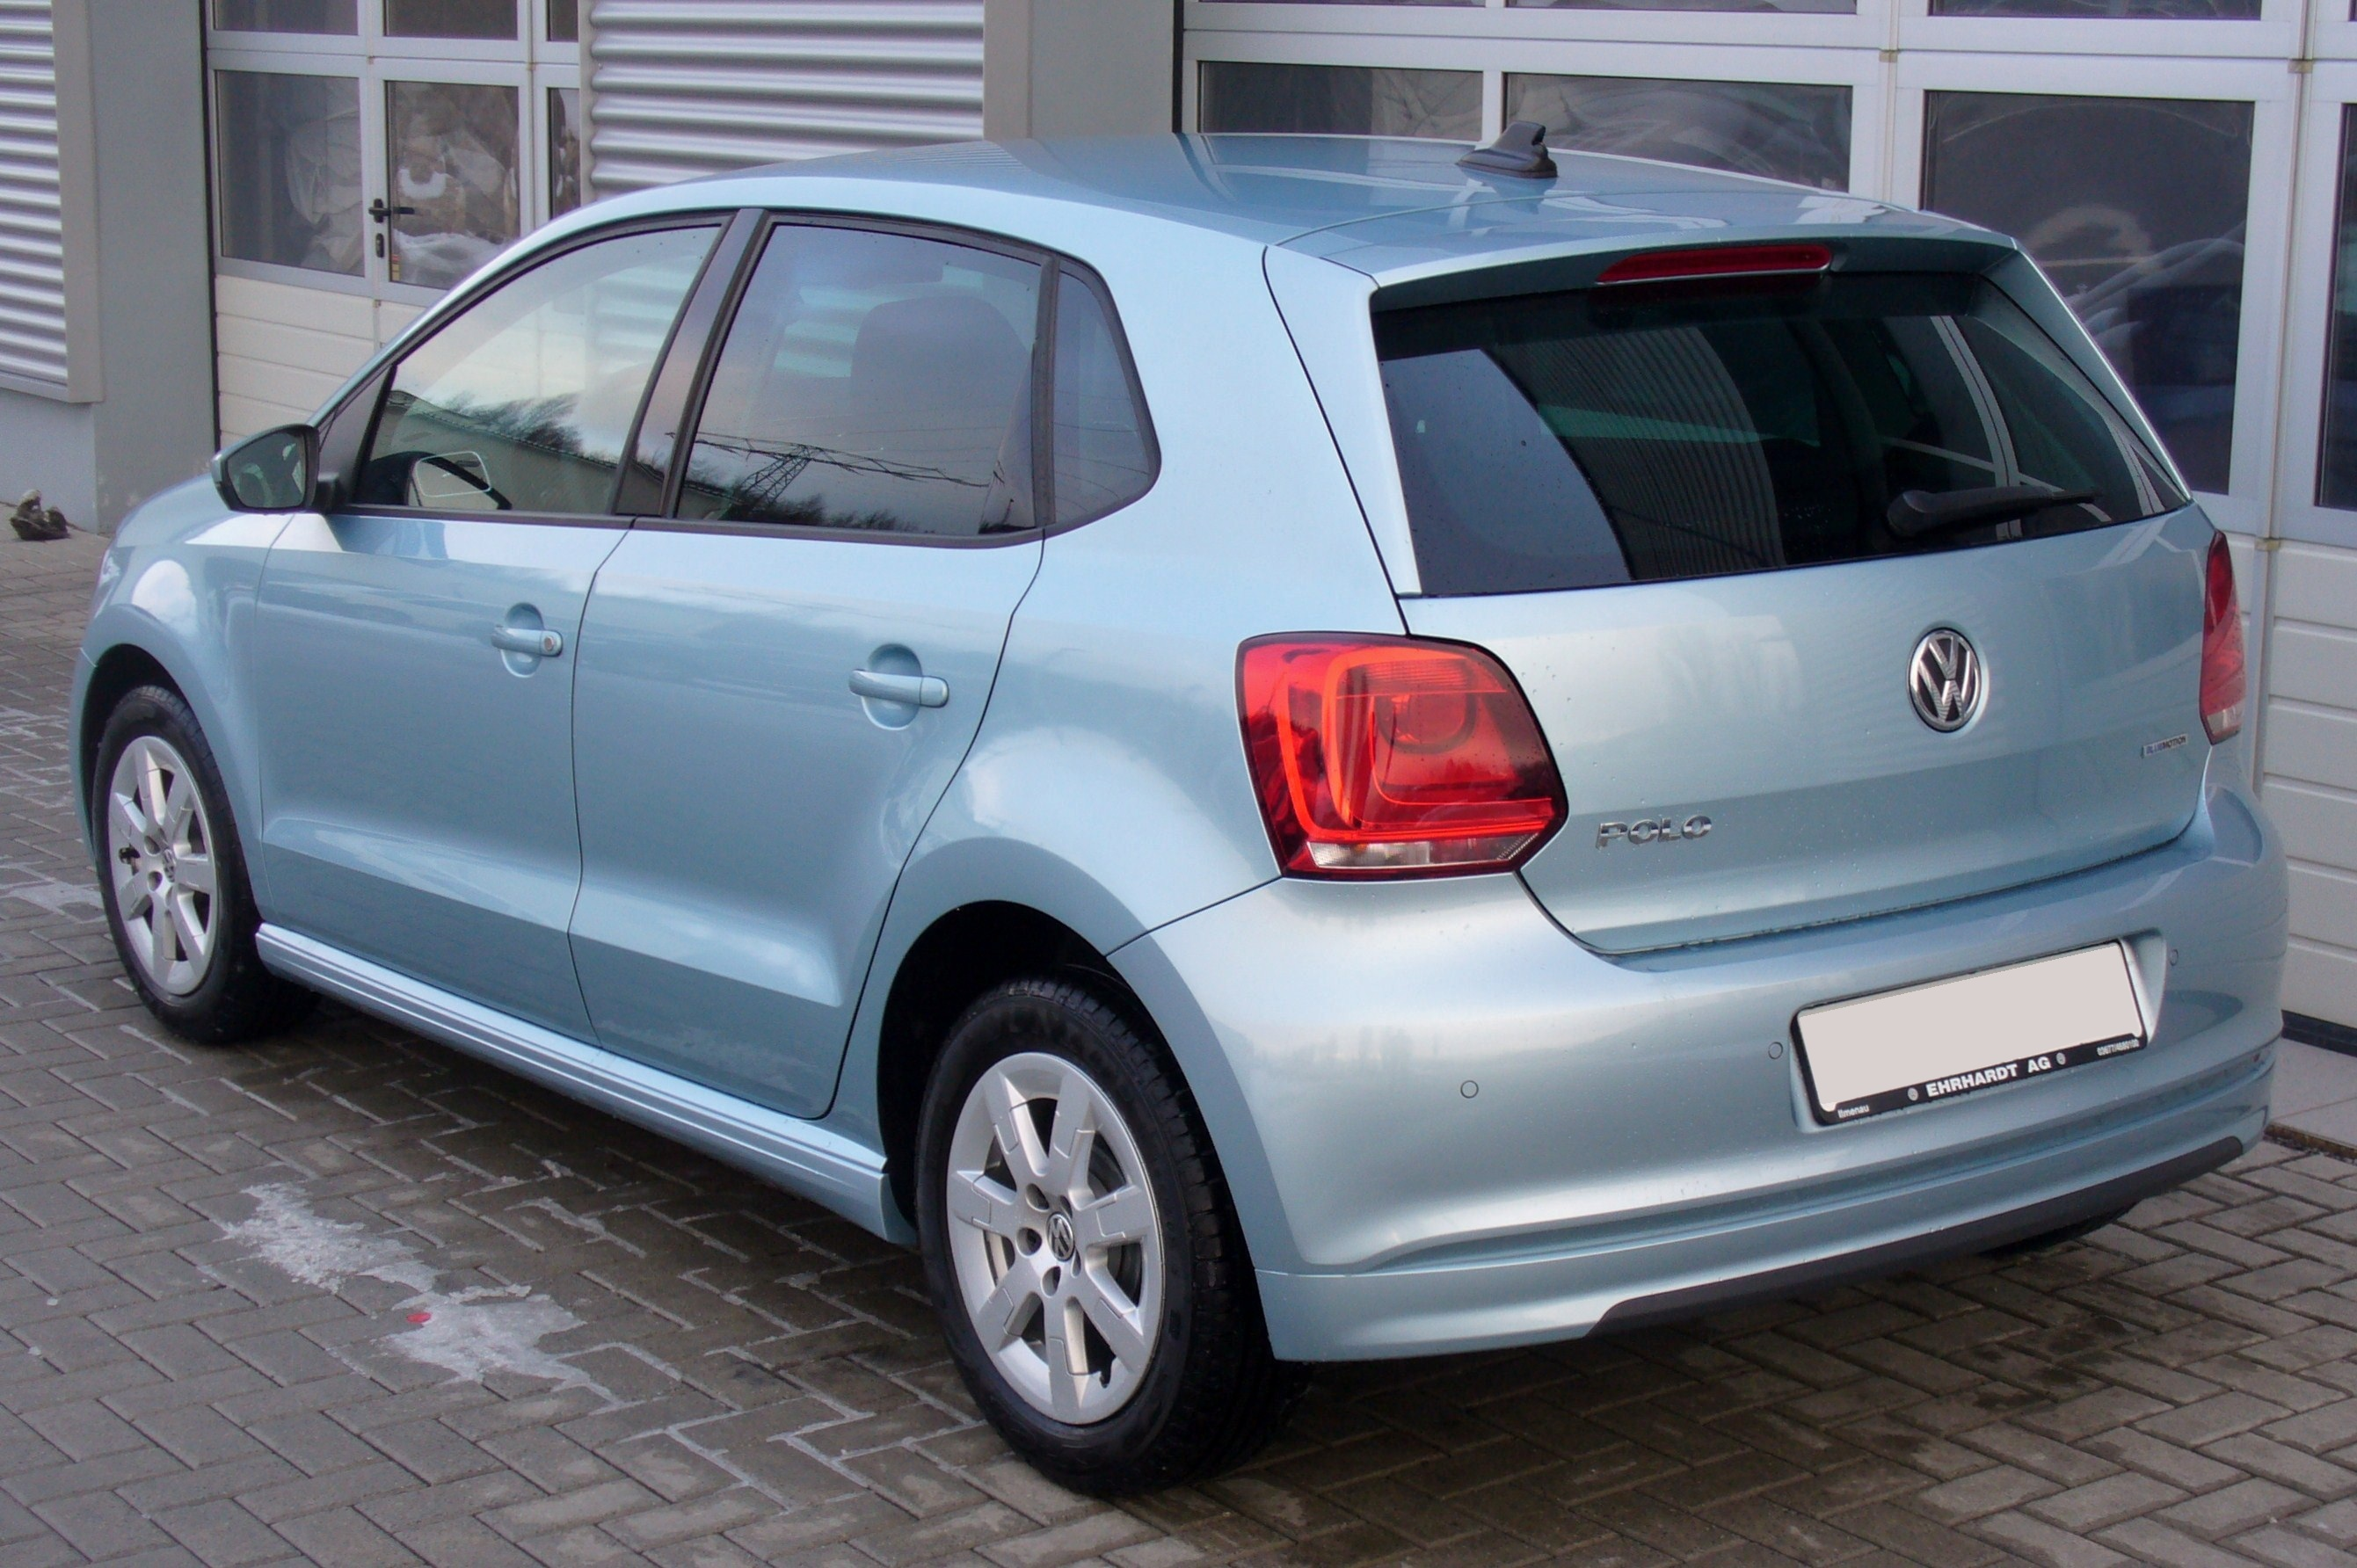 file:vw polo v 1.2 tdi bluemotion glacierblau interieur